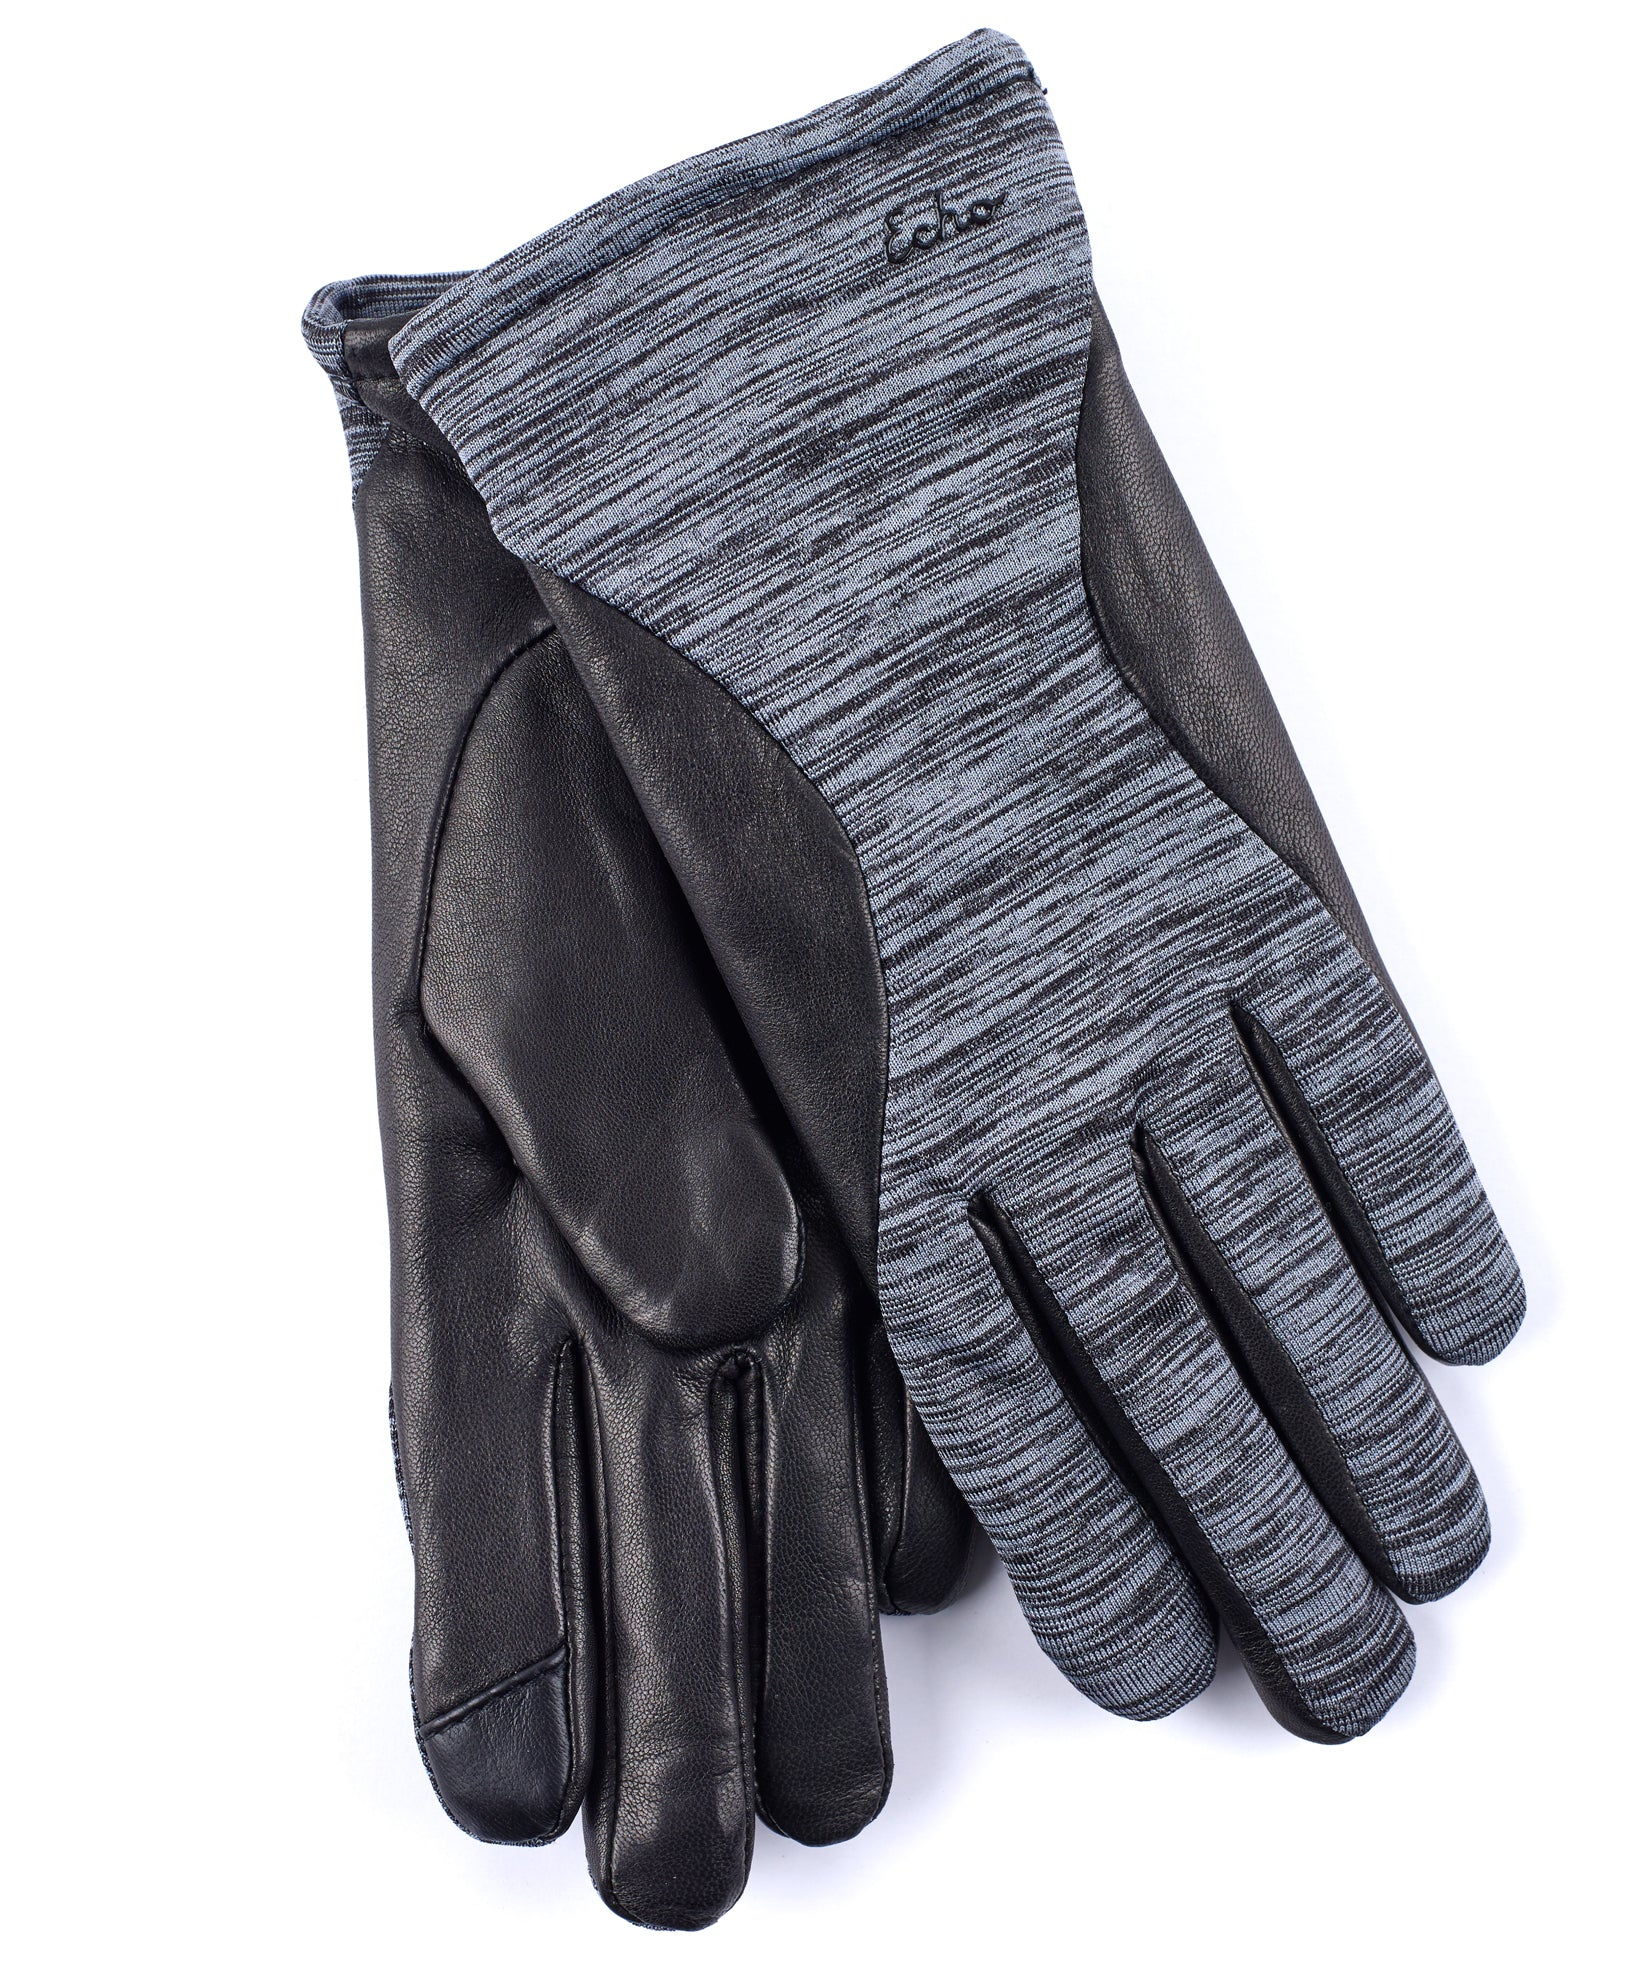 Heather Grey - Contour Leather Superfit Glove